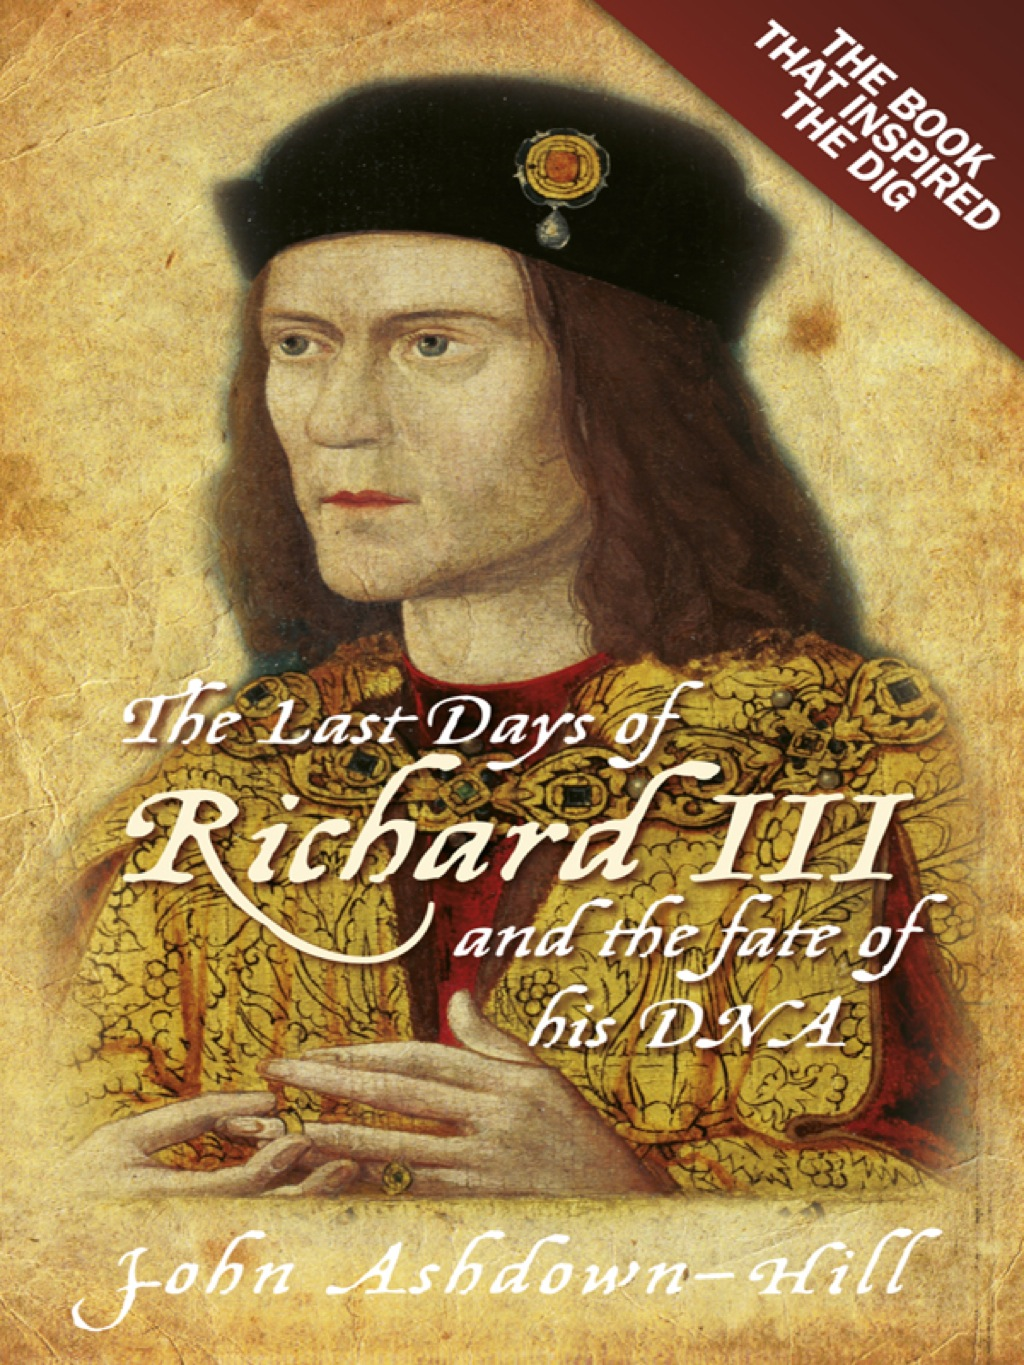 The Last Days of Richard III and the fate of his DNA (ebook) eBooks